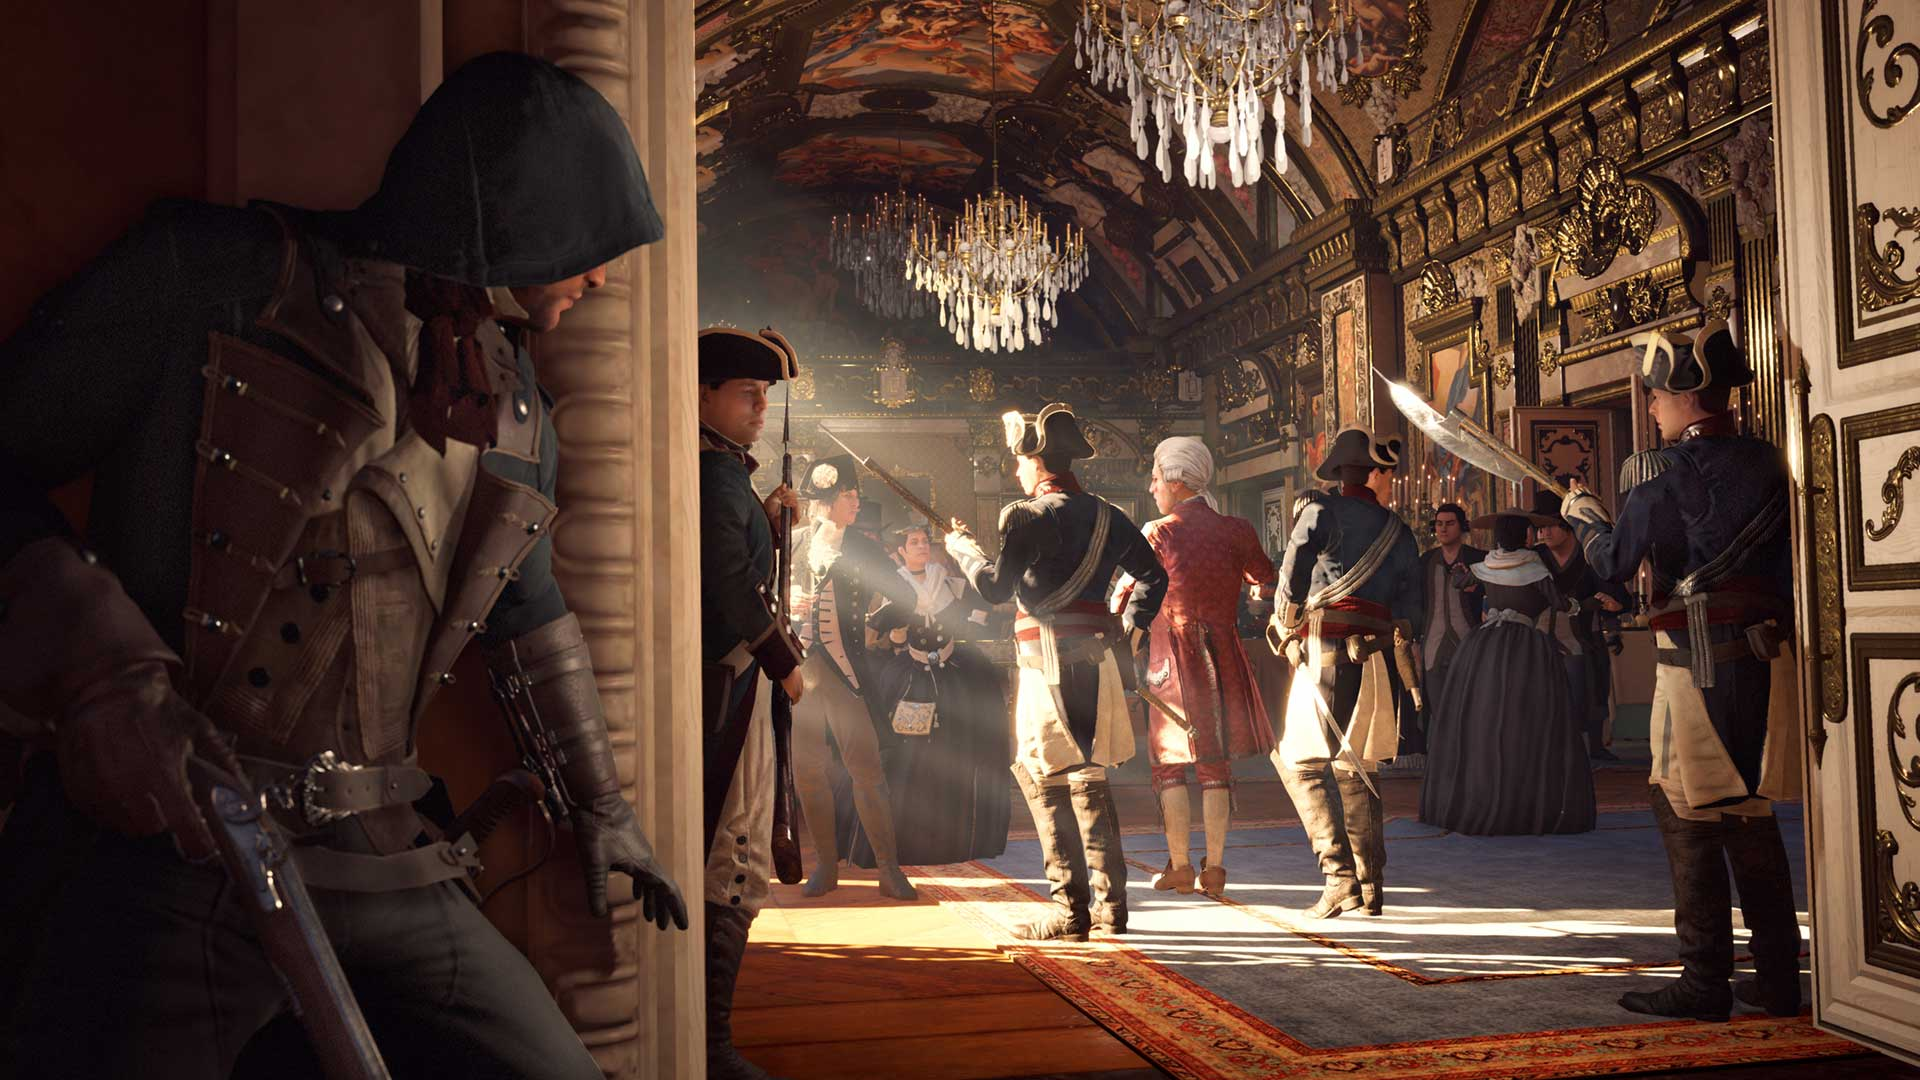 Assassin's Creed Unity Multilenguaje ESPAÑOL PC + Update v1.5 (RELOADED) + REPACK 10 DVD5 (JPW) 3